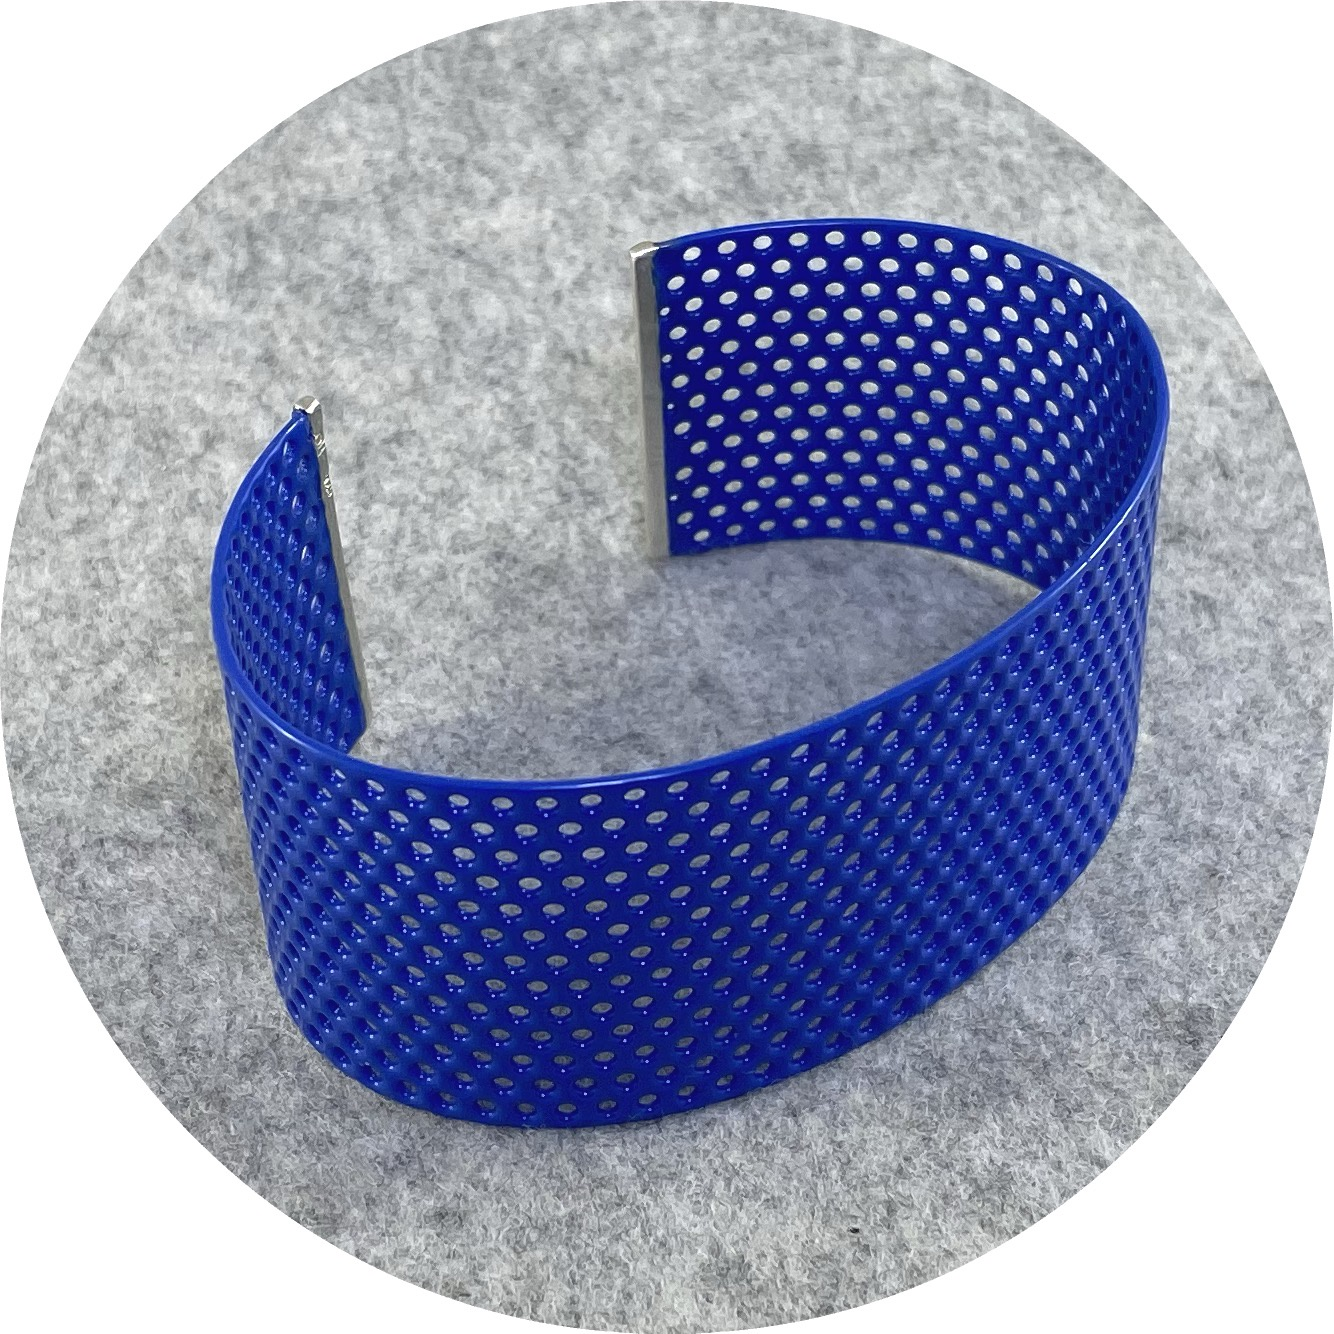 Jin Ah Jo - Blue Perforated Cuff with Straight Silver Line in Mildsteel